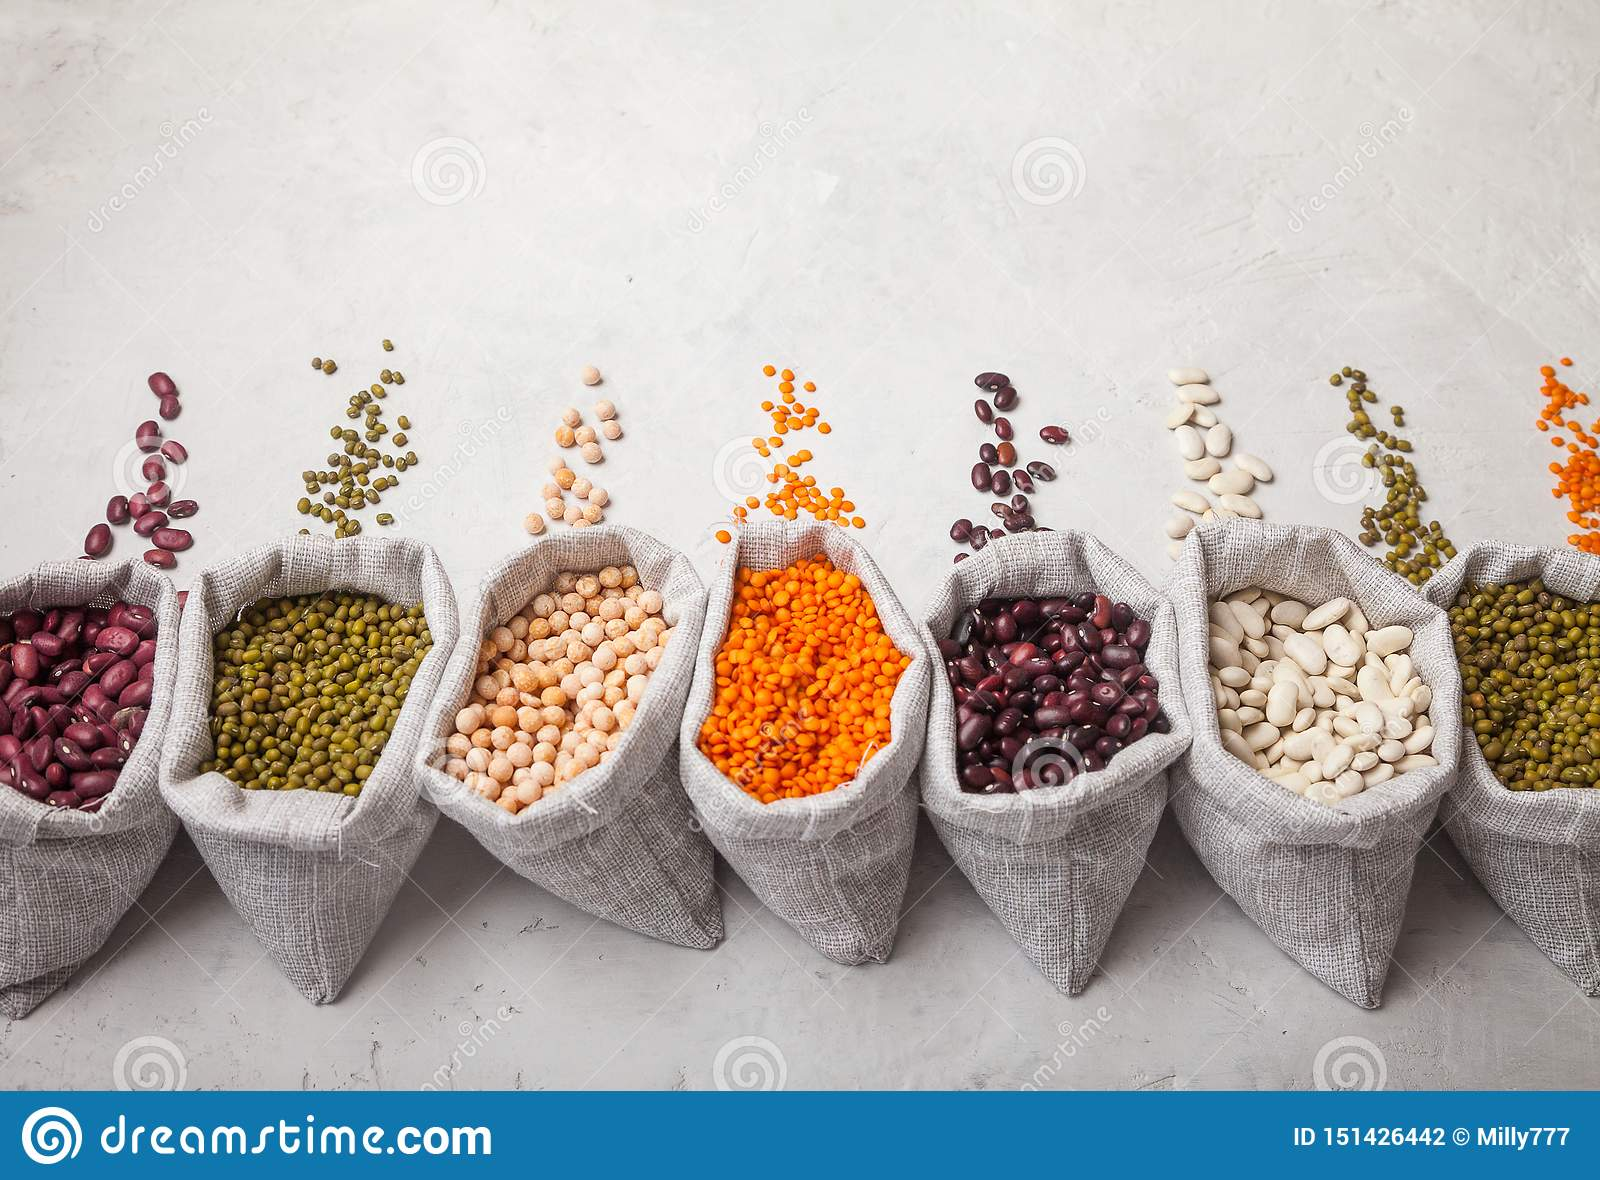 are lentils good for a ketogenic diet